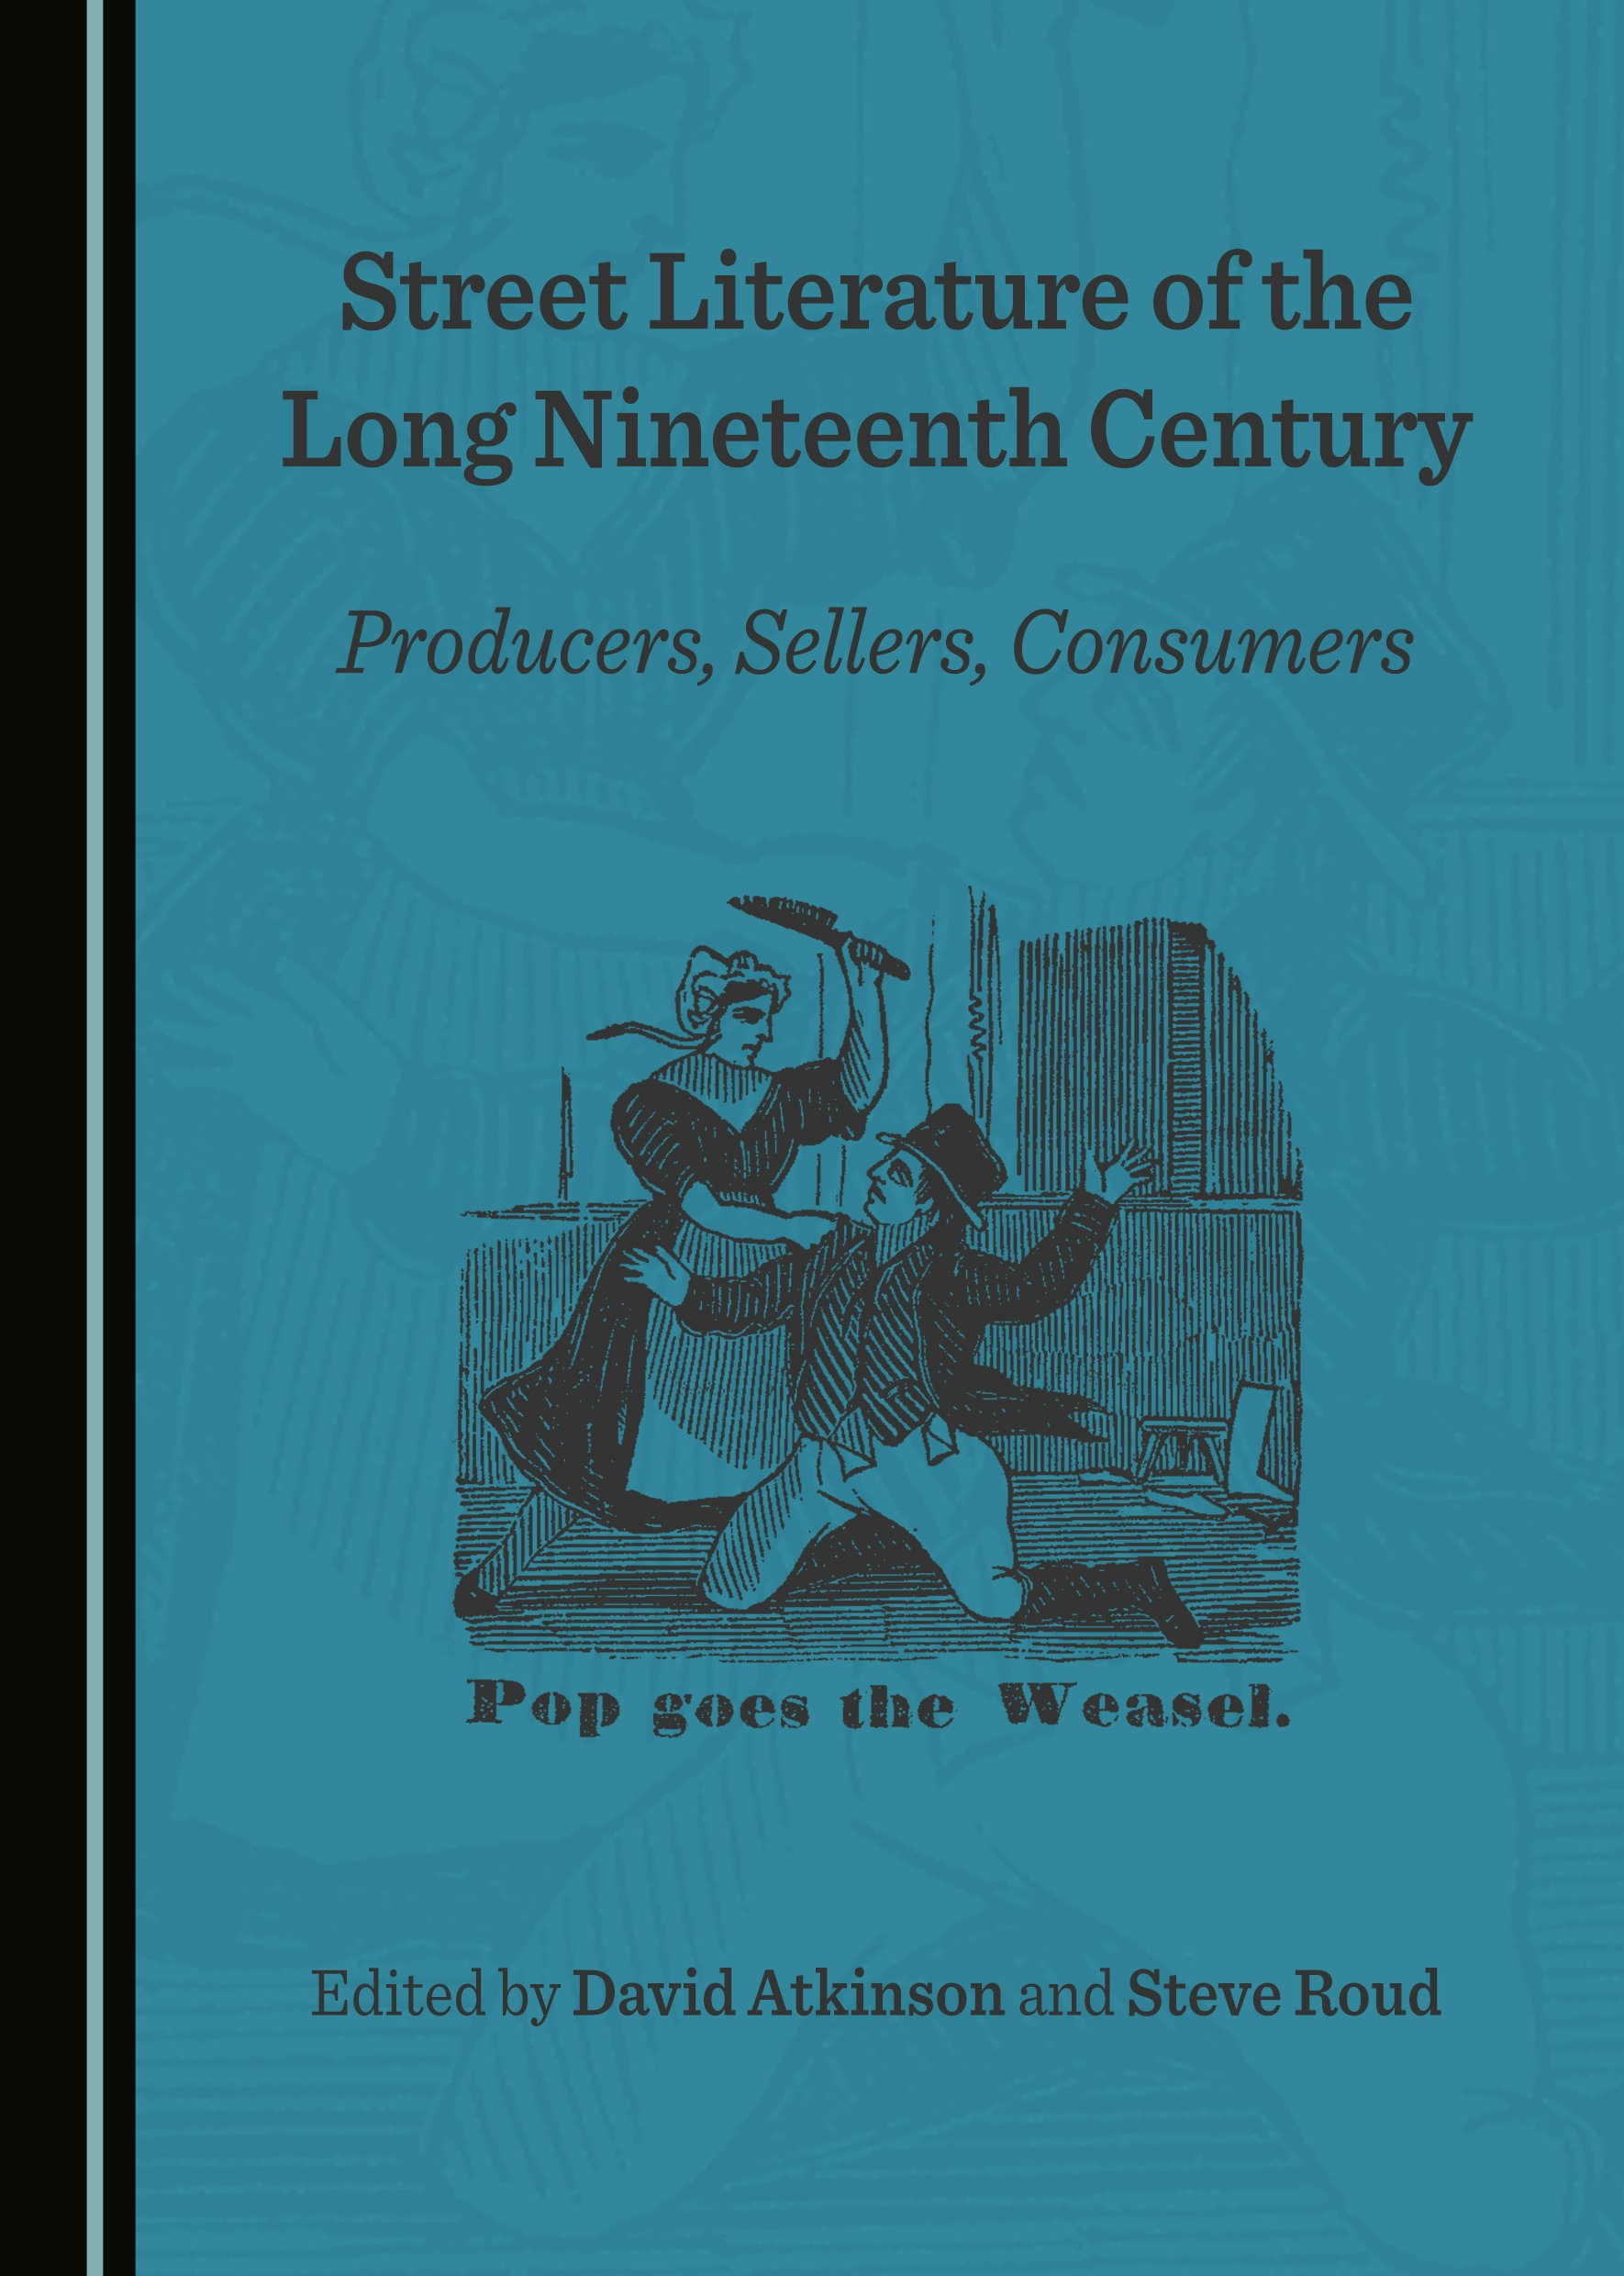 Street Literature of the Long Nineteenth Century: Producers, Sellers, Consumers